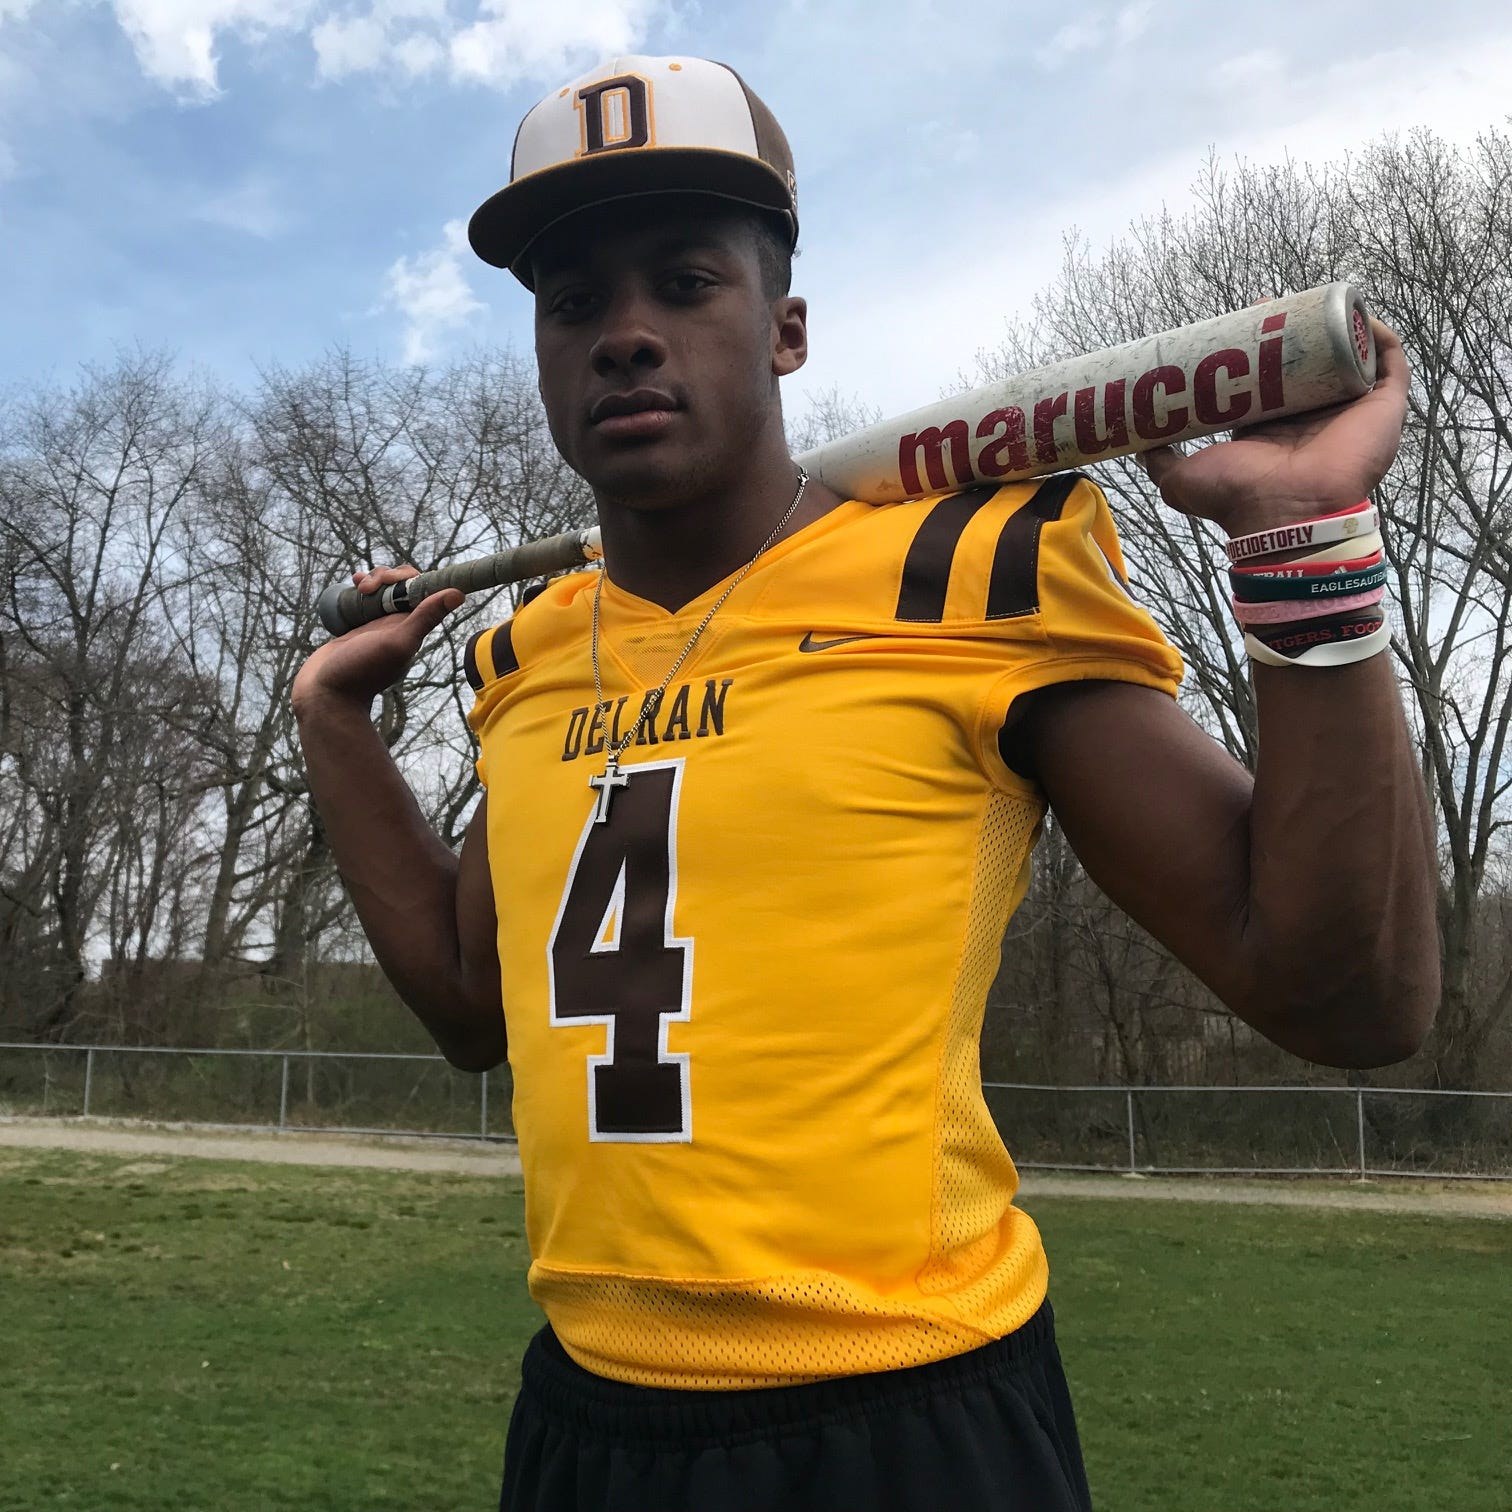 Delran's RJ Moten has sights set on playing Division-I football and baseball